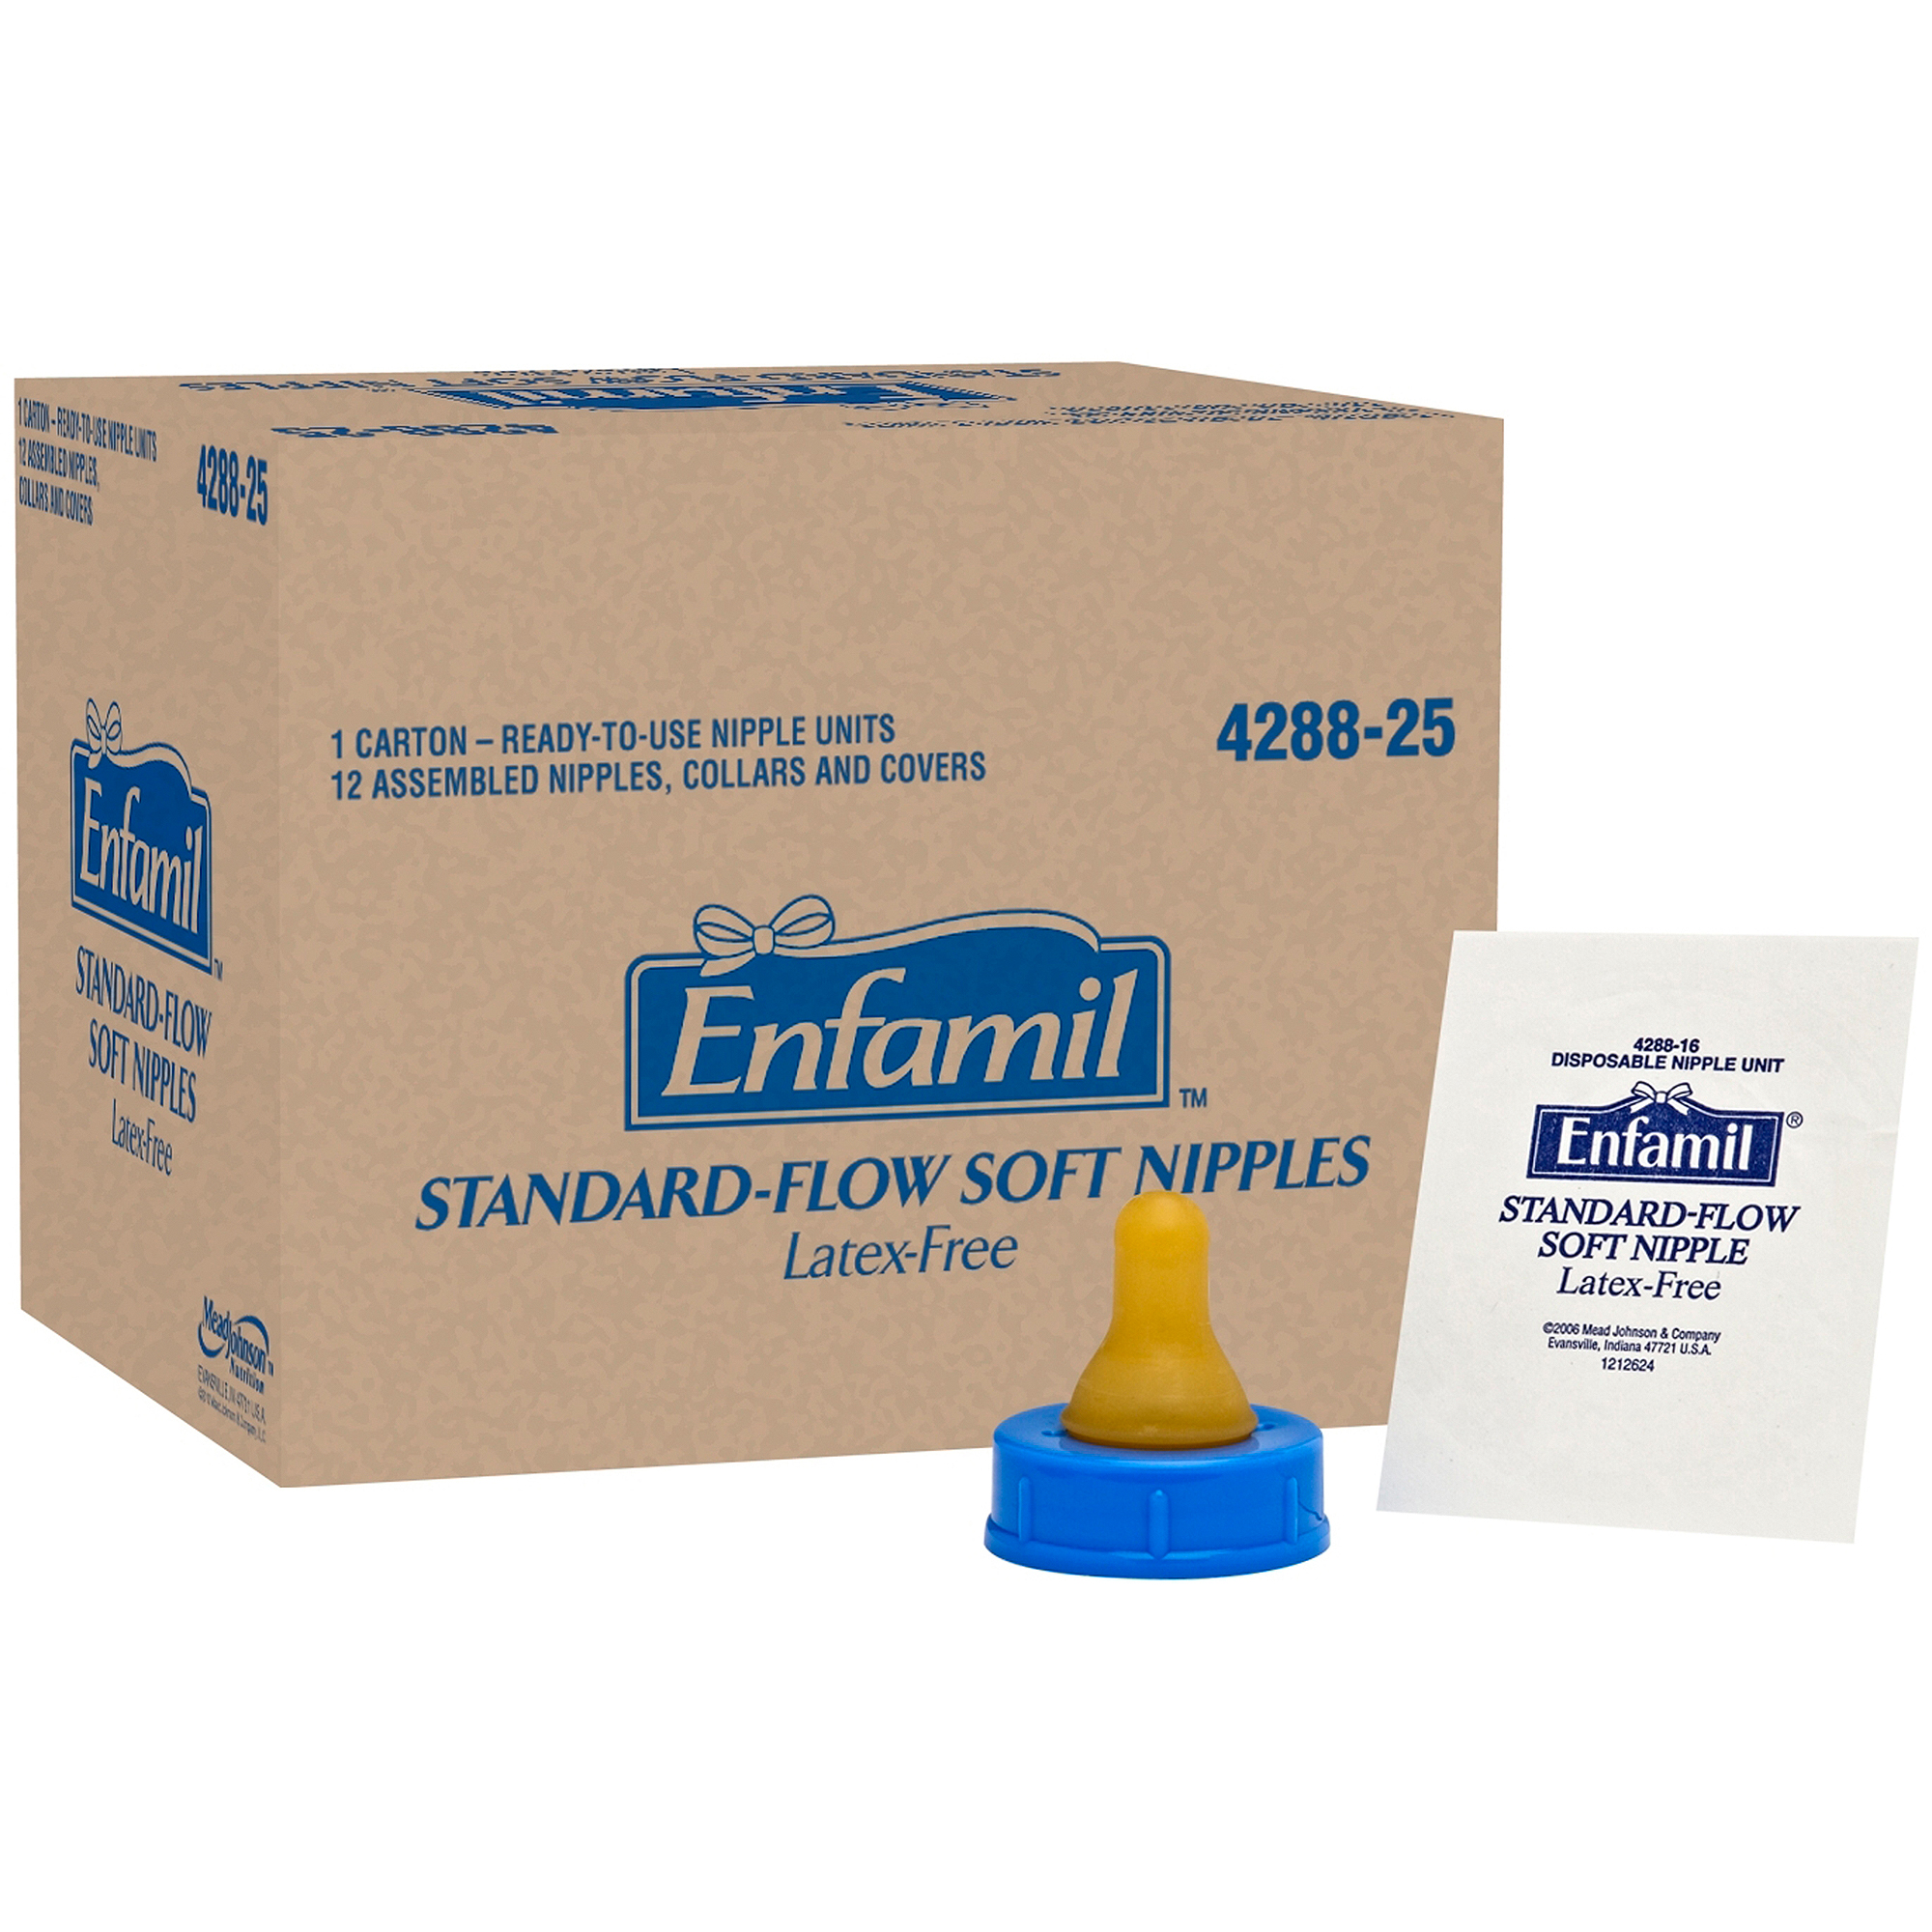 Enfamil Standard-Flow Soft Nipples, 12-Pack, Latex-Free